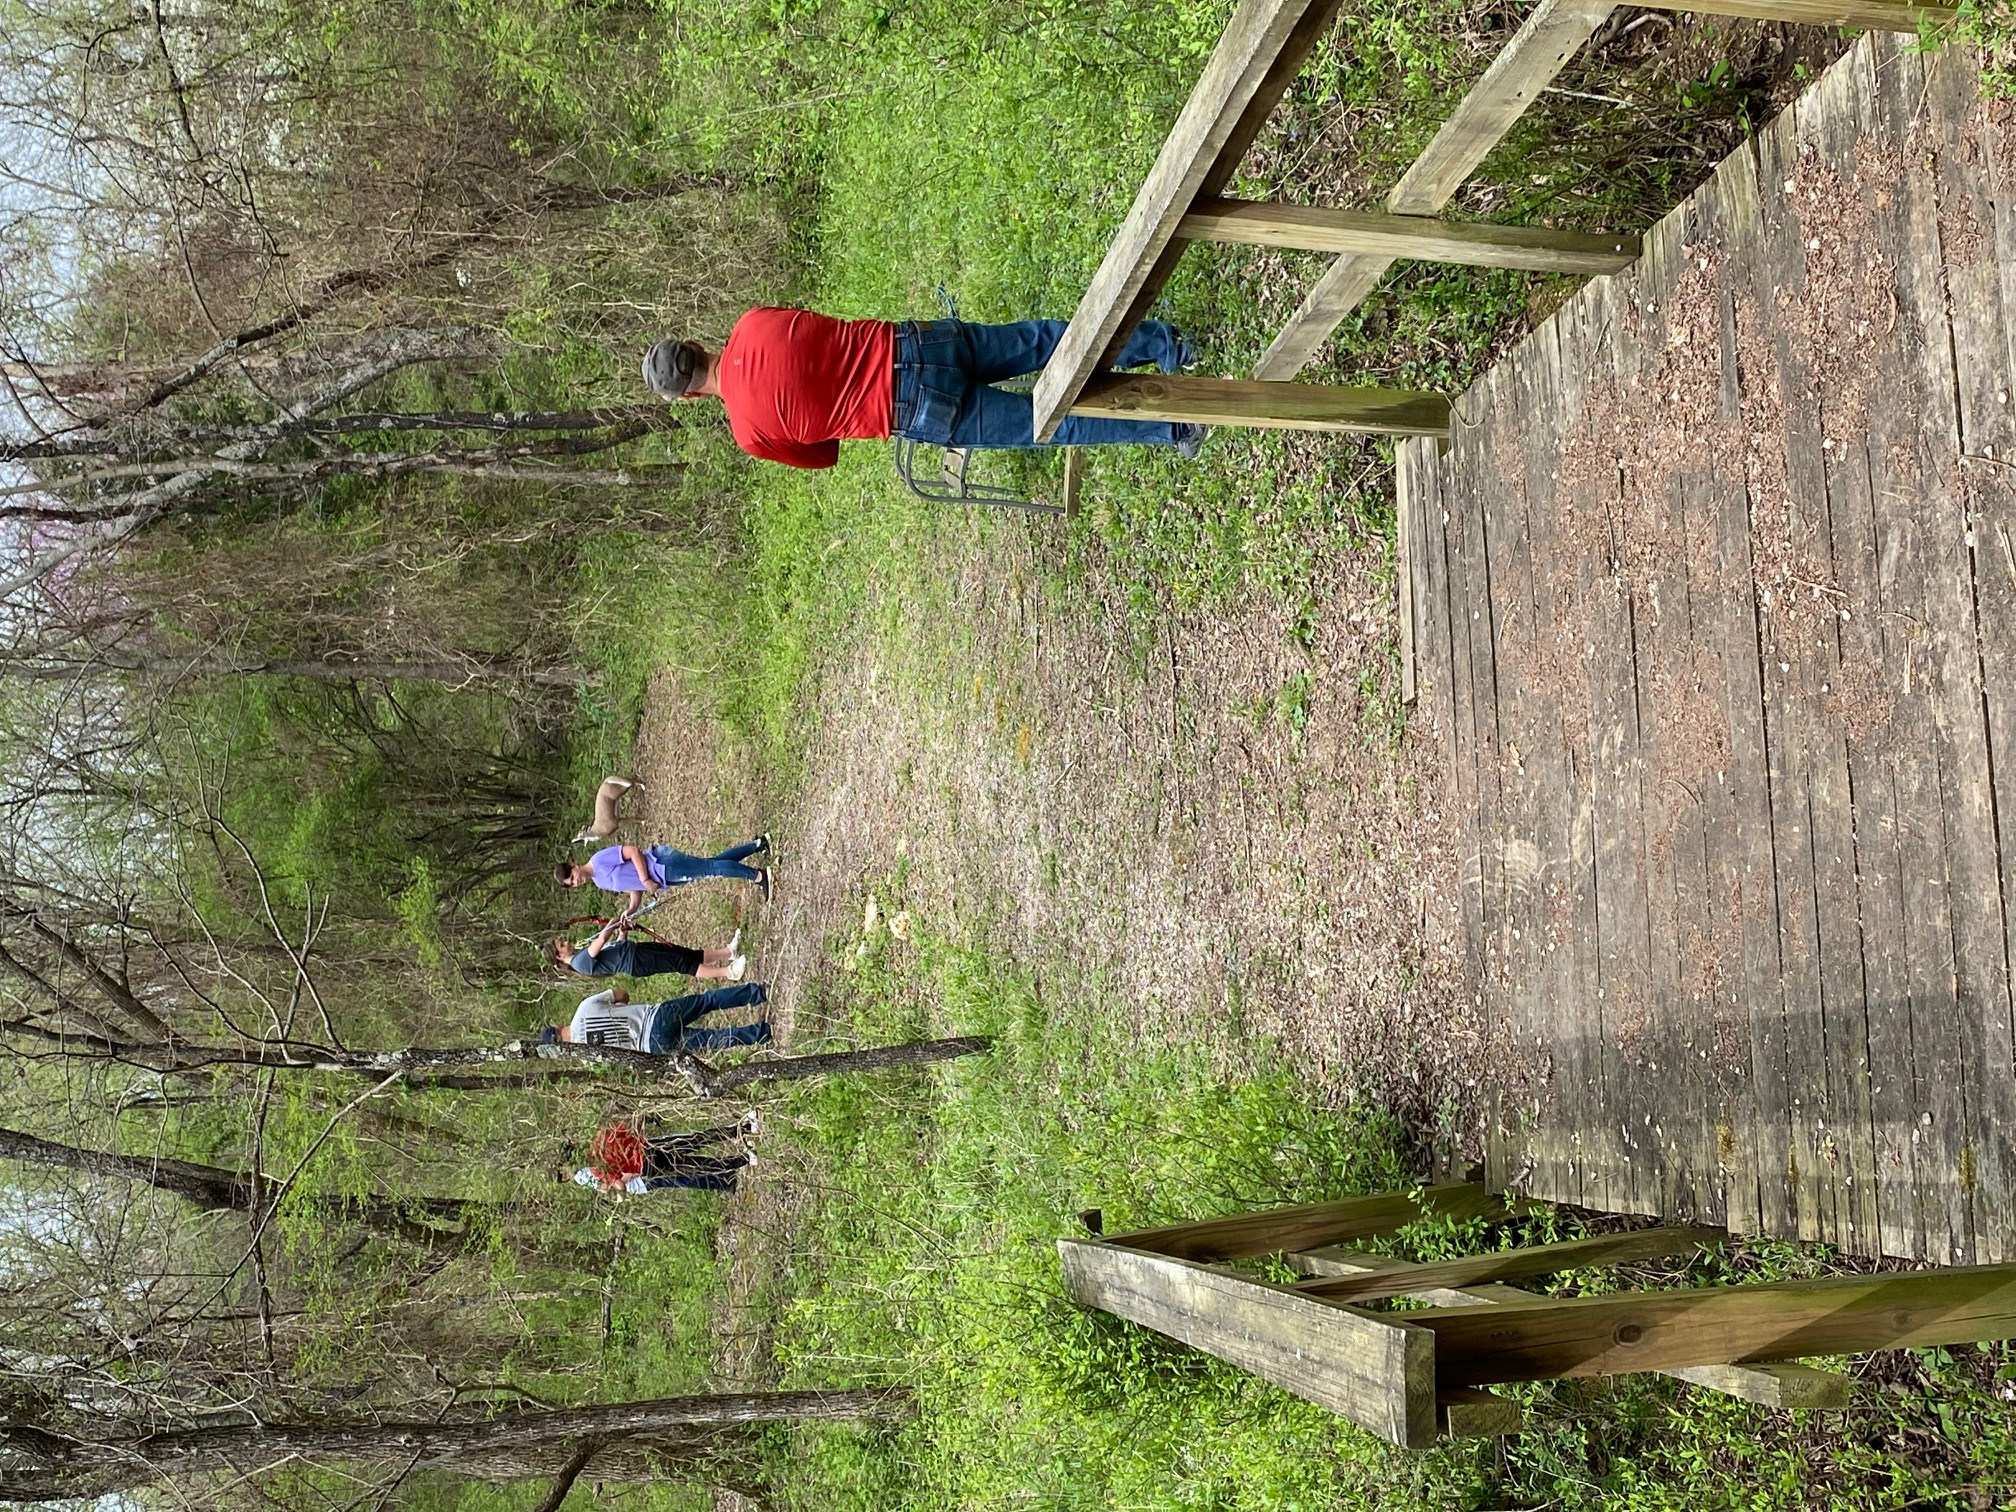 next stop along the nature trail